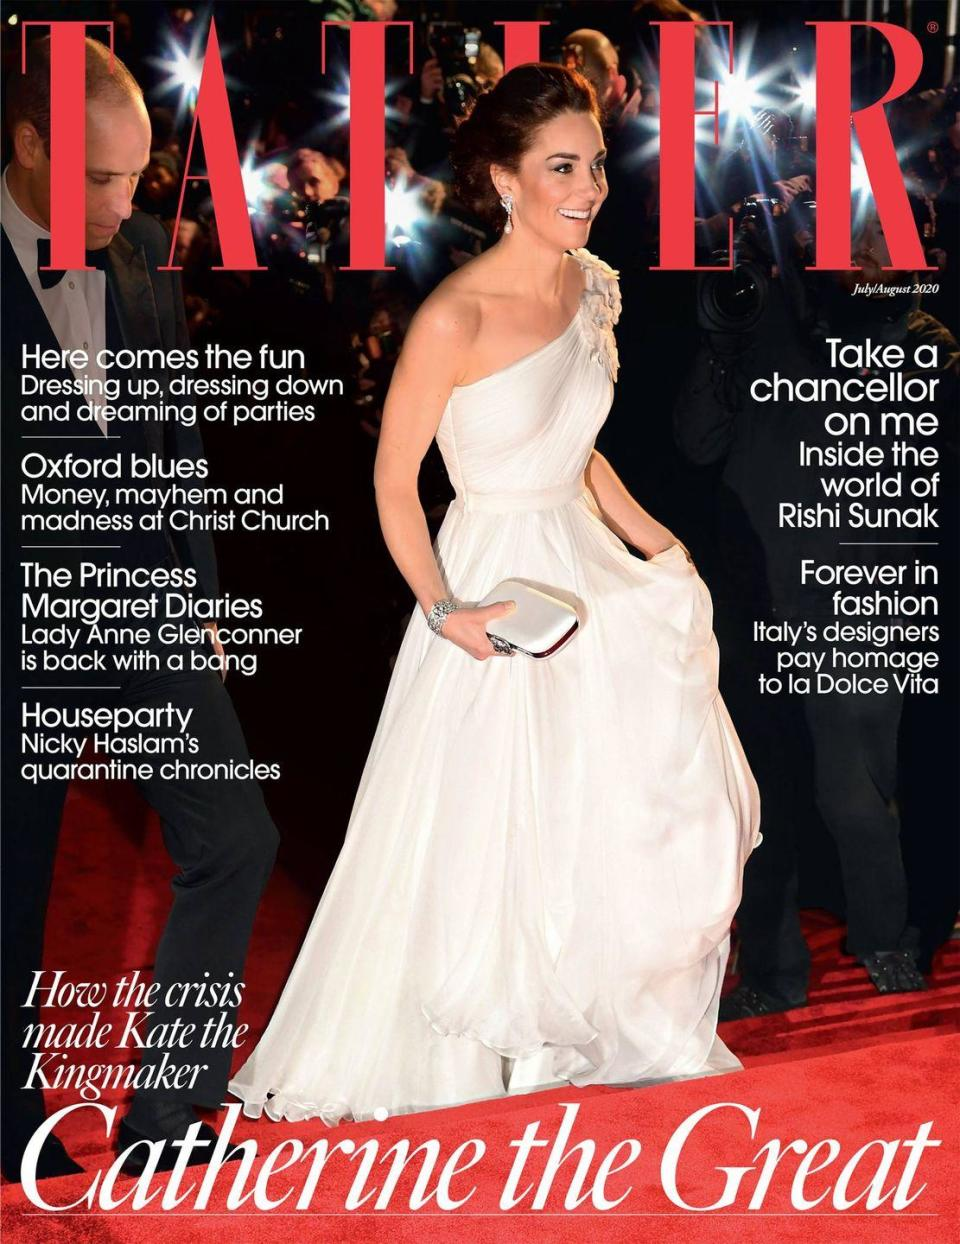 """<p>Stories are written about the royals all the time, and rarely does the palace ever comment. That was true for Kate until <em>Tatler</em> dropped a cover story about the Duchess for which they allegedly spoke to a bunch of her """"friends."""" The sources claimed Kate was upset about her workload following Meghan and Harry's royal exit.</p><p>Usually Kensington Palace would be hush-hush about this, but they <a href=""""https://www.marieclaire.com/celebrity/a32684613/kensington-palace-kate-middleton-tatler-article-response/"""" rel=""""nofollow noopener"""" target=""""_blank"""" data-ylk=""""slk:released a statement"""" class=""""link rapid-noclick-resp"""">released a statement</a> saying """"a swathe of inaccuracies and false misrepresentations"""" were reported in the article. Kate and William sent <a href=""""https://www.marieclaire.com/celebrity/a32722481/kate-middleton-prince-william-suing-tatler-magazine-lies/"""" rel=""""nofollow noopener"""" target=""""_blank"""" data-ylk=""""slk:legal letters"""" class=""""link rapid-noclick-resp"""">legal letters</a> demanding the story be taken down from <em>Tatler</em>'s site, but the publication dismissed them. </p><p>""""We can confirm we have received correspondence from lawyers acting for the Duke and the Duchess of Cambridge and believe it has no merit,"""" said <em>Tatler </em><a href=""""https://www.standard.co.uk/insider/royalssociety/tatler-kate-middleton-prince-william-response-legal-action-a4456746.html"""" rel=""""nofollow noopener"""" target=""""_blank"""" data-ylk=""""slk:in a statement."""" class=""""link rapid-noclick-resp"""">in a statement. </a></p>"""